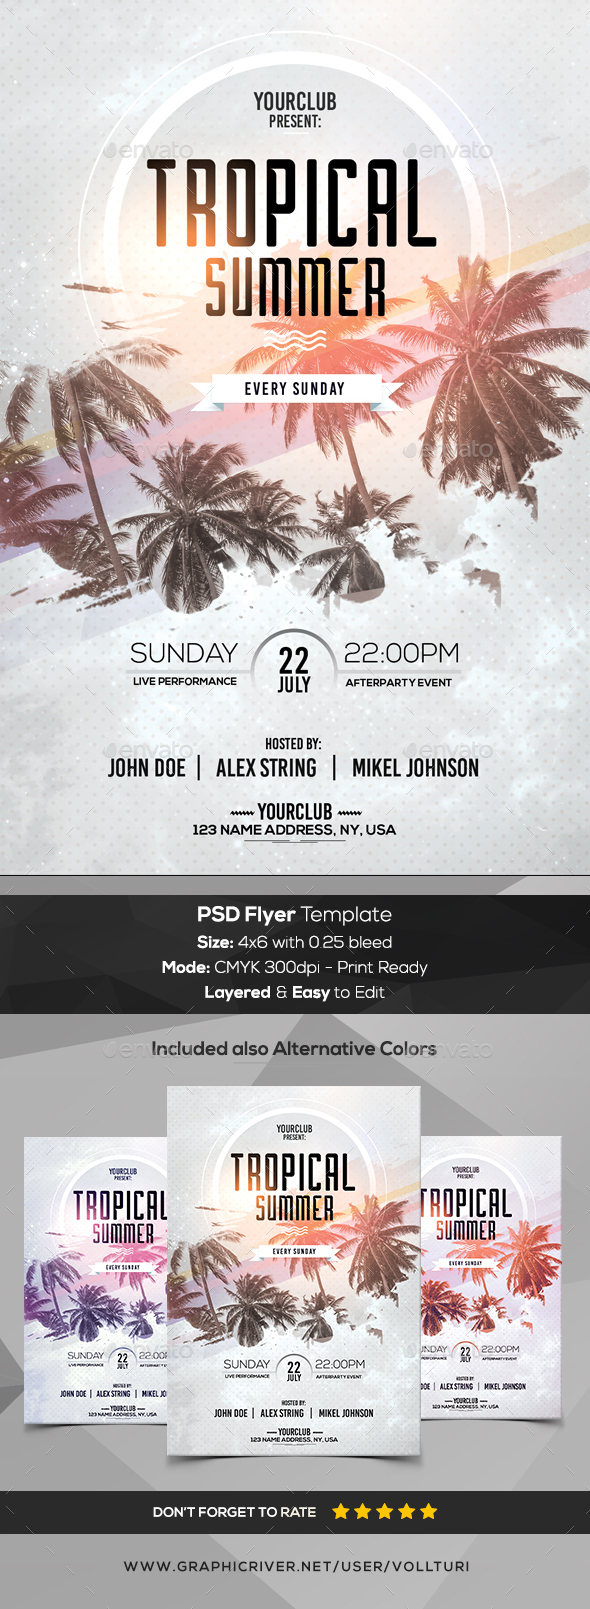 Tropical Summer - PSD Flyer - Flyers Print Templates